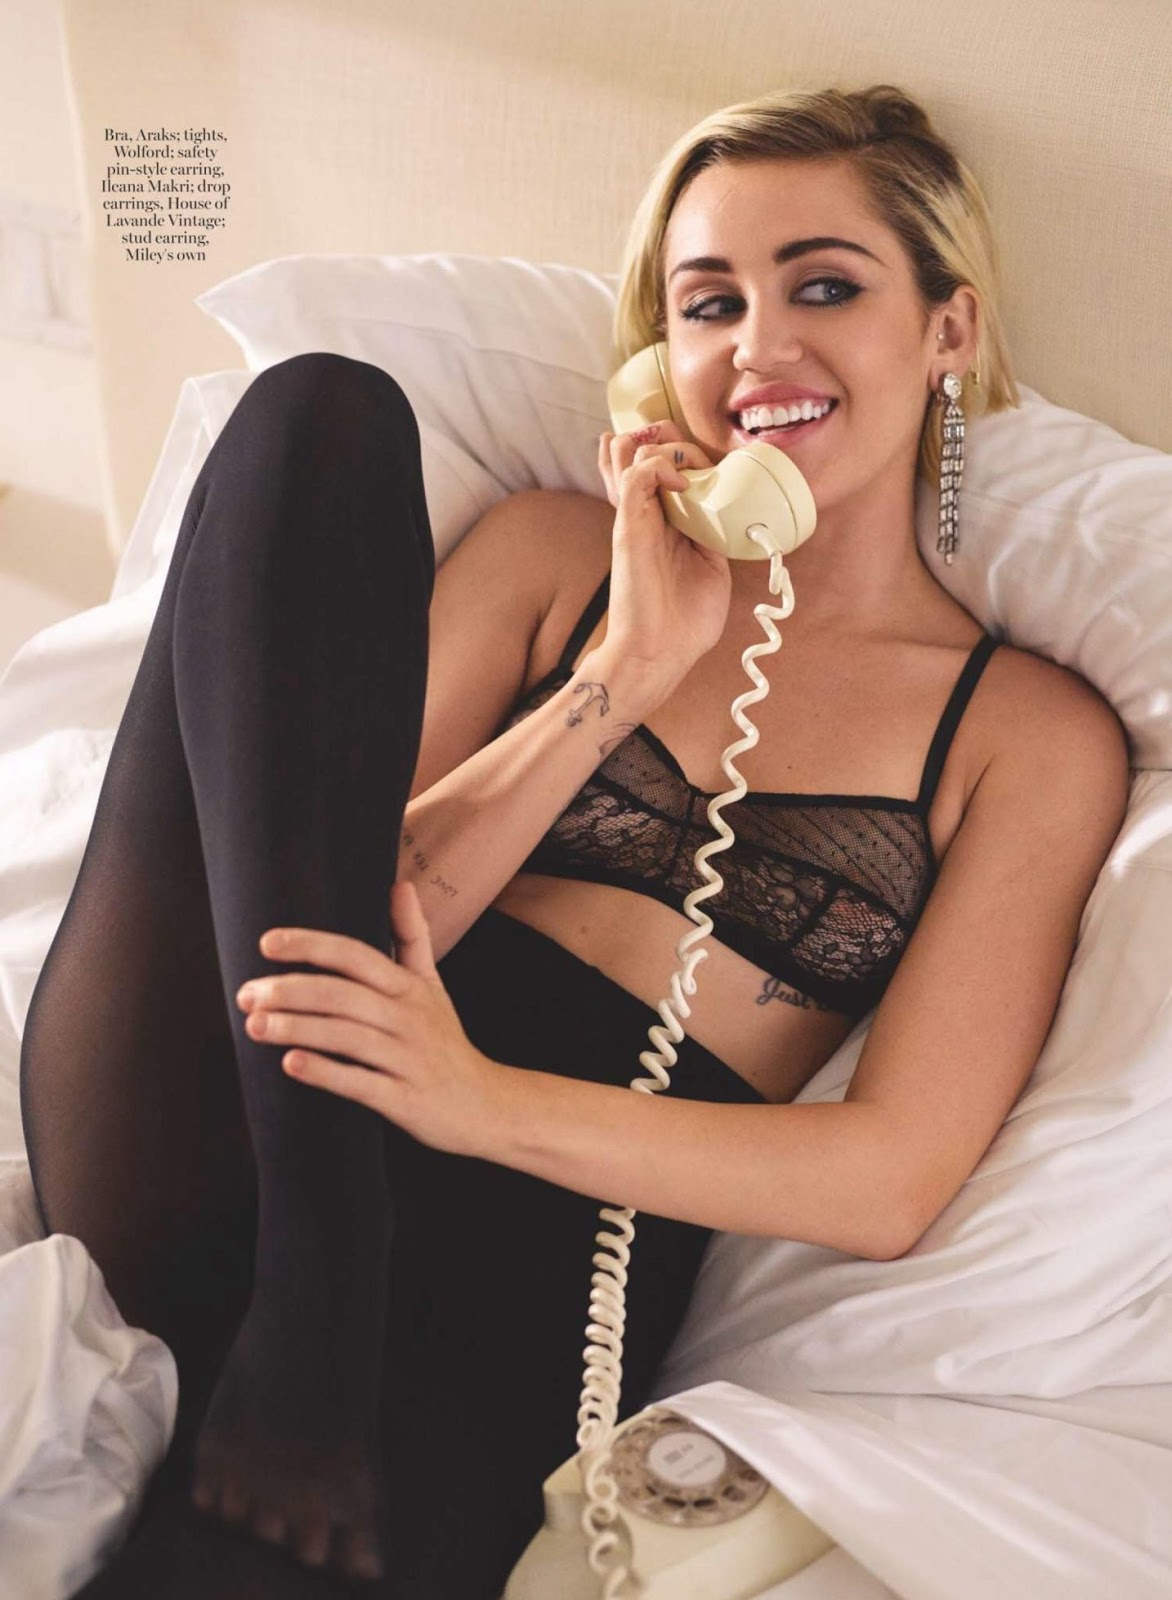 Miley Cyrus in Marie Claire UK Magazine - Photo Miley Cyrus 2015